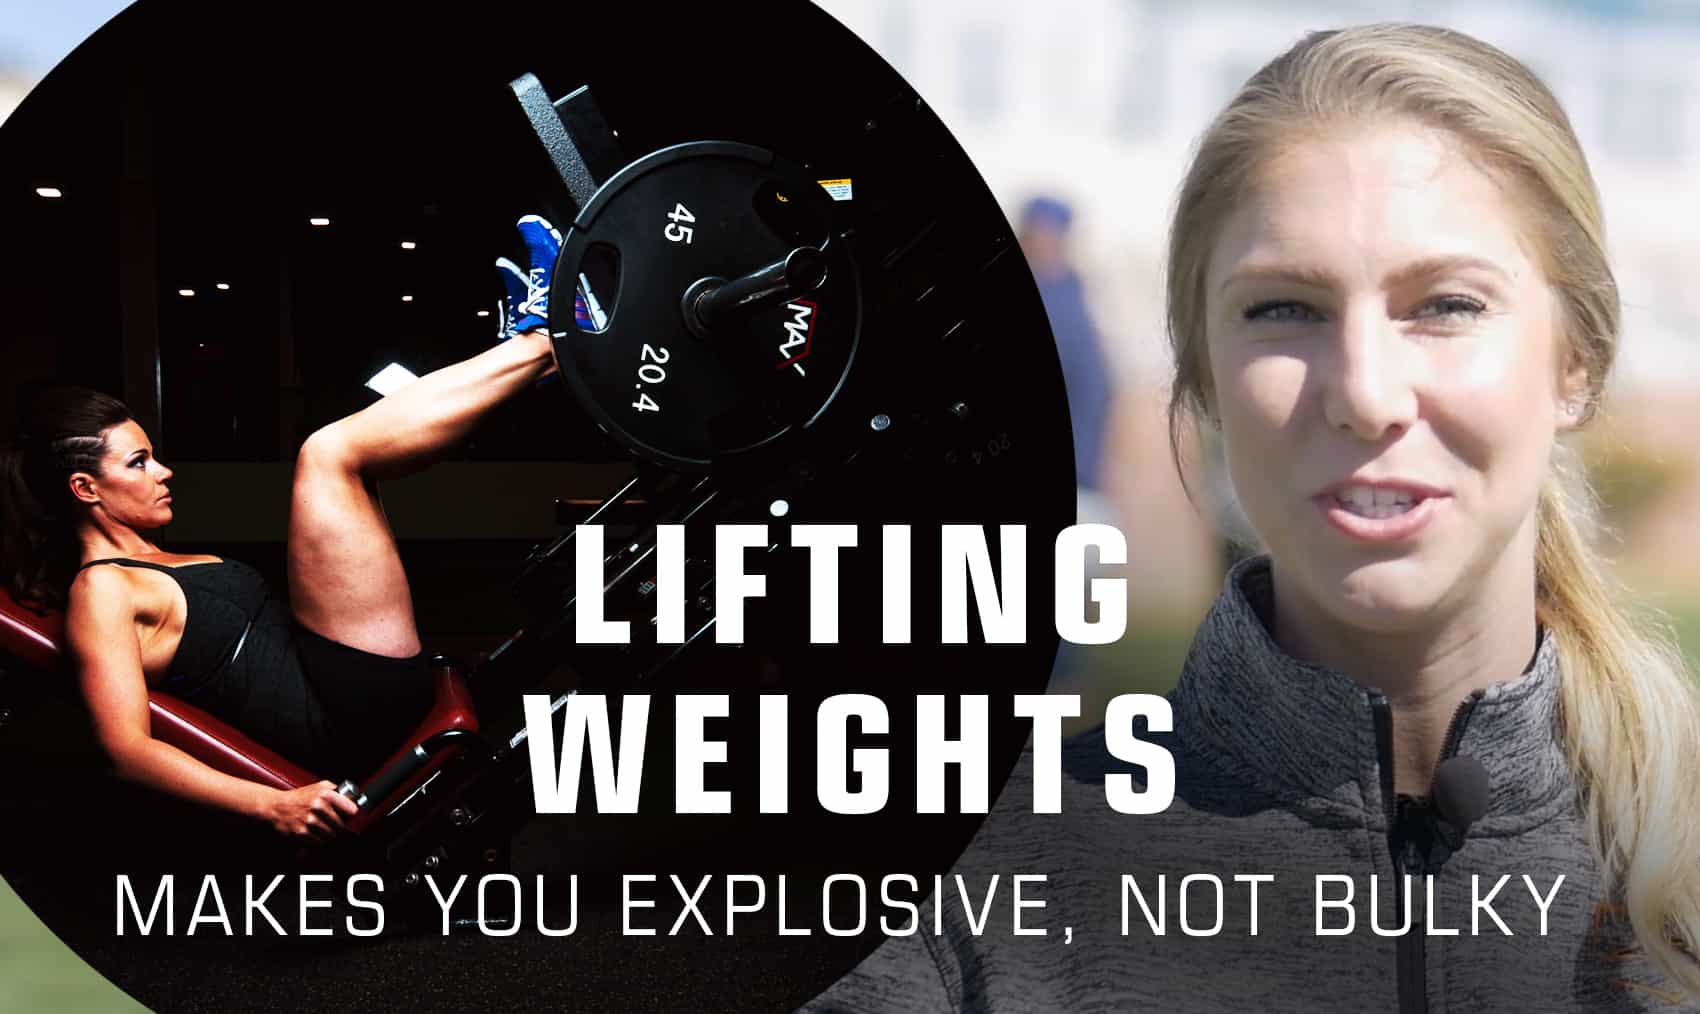 Lifting Weights Makes You Explosive Not Bulky